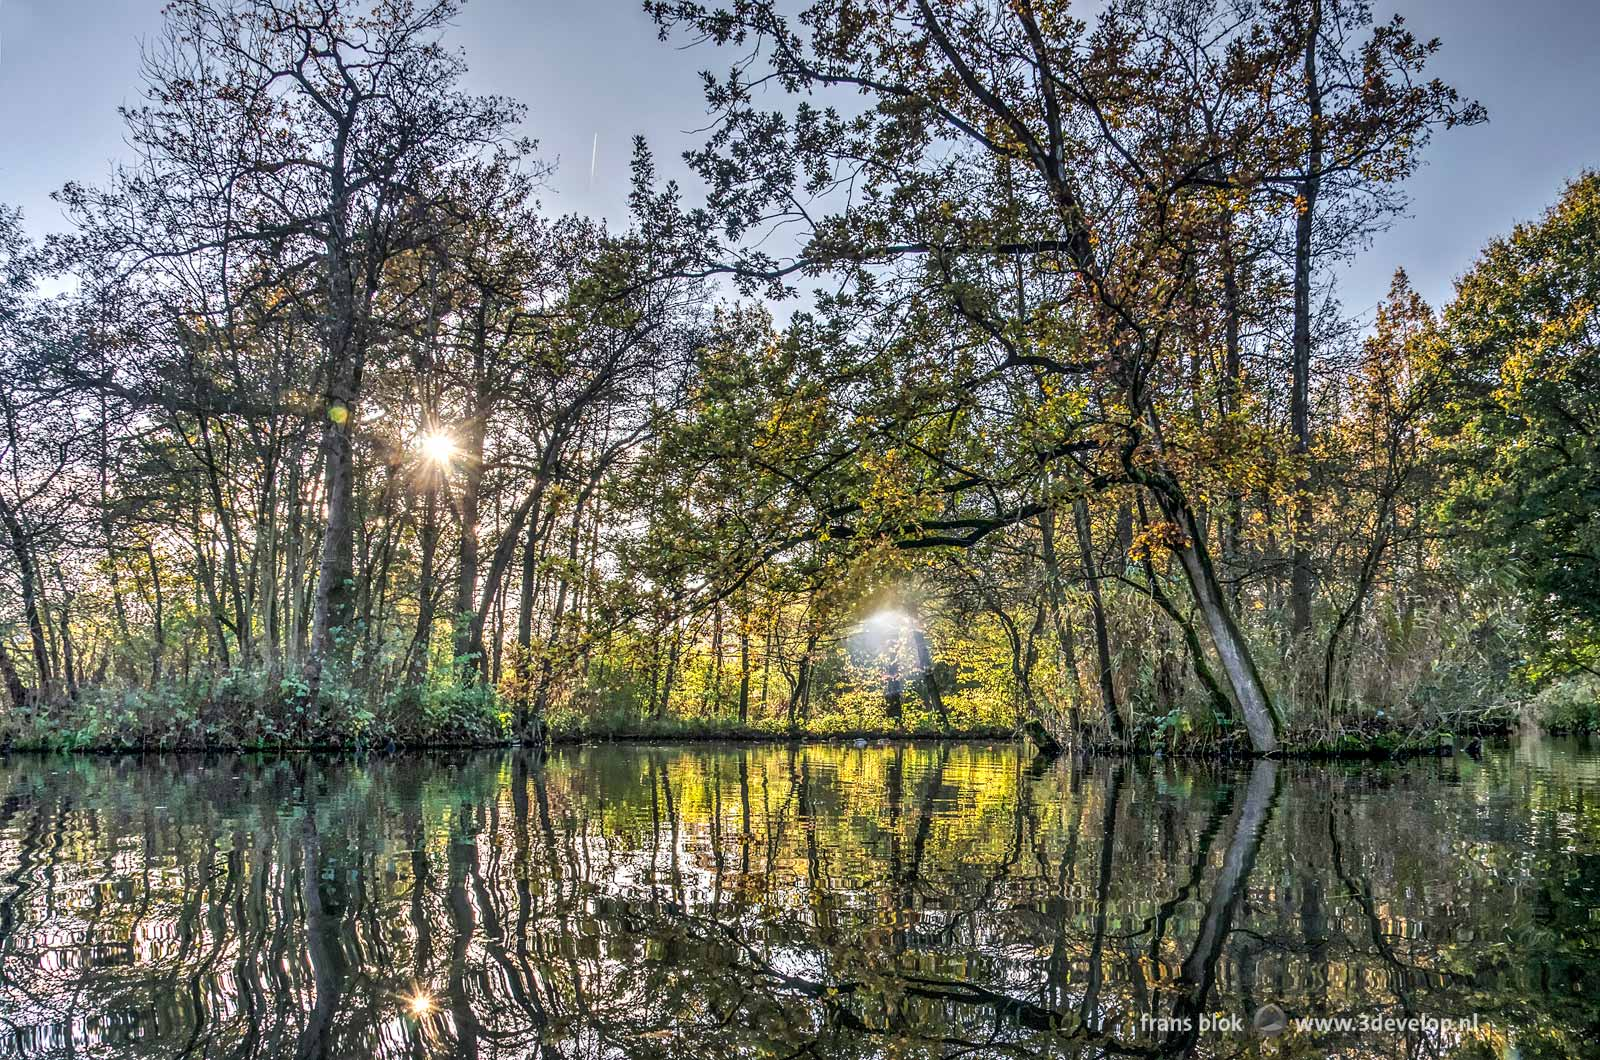 Autumn in the Brediuspark in Woerden, The Netherlands with a low sun and the reflection of trees on the water surface